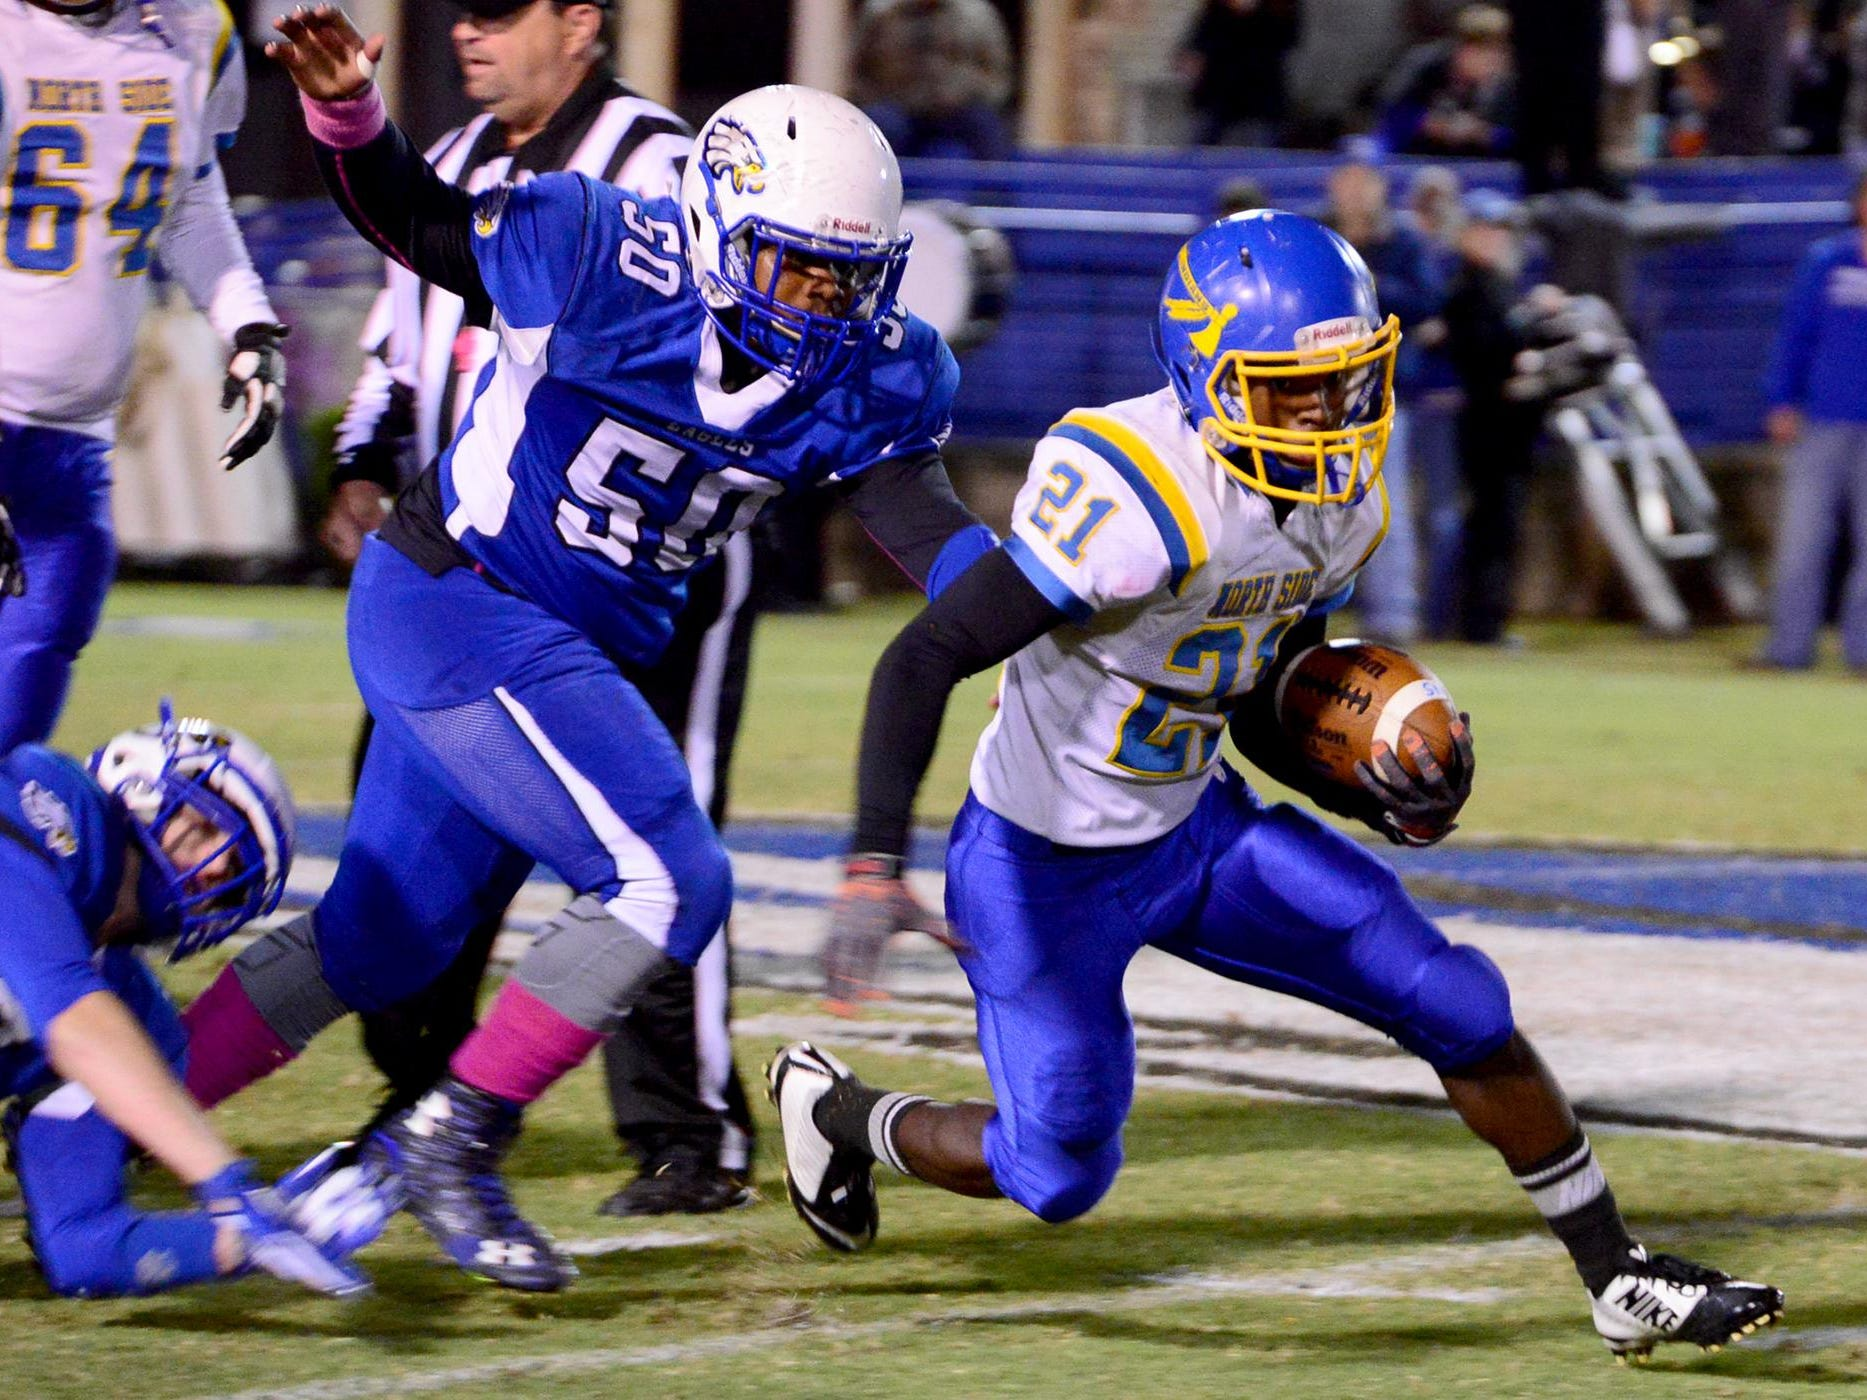 North Side's Darius Brown is chased by Chester County's Eric Arnold during their game Friday evening.